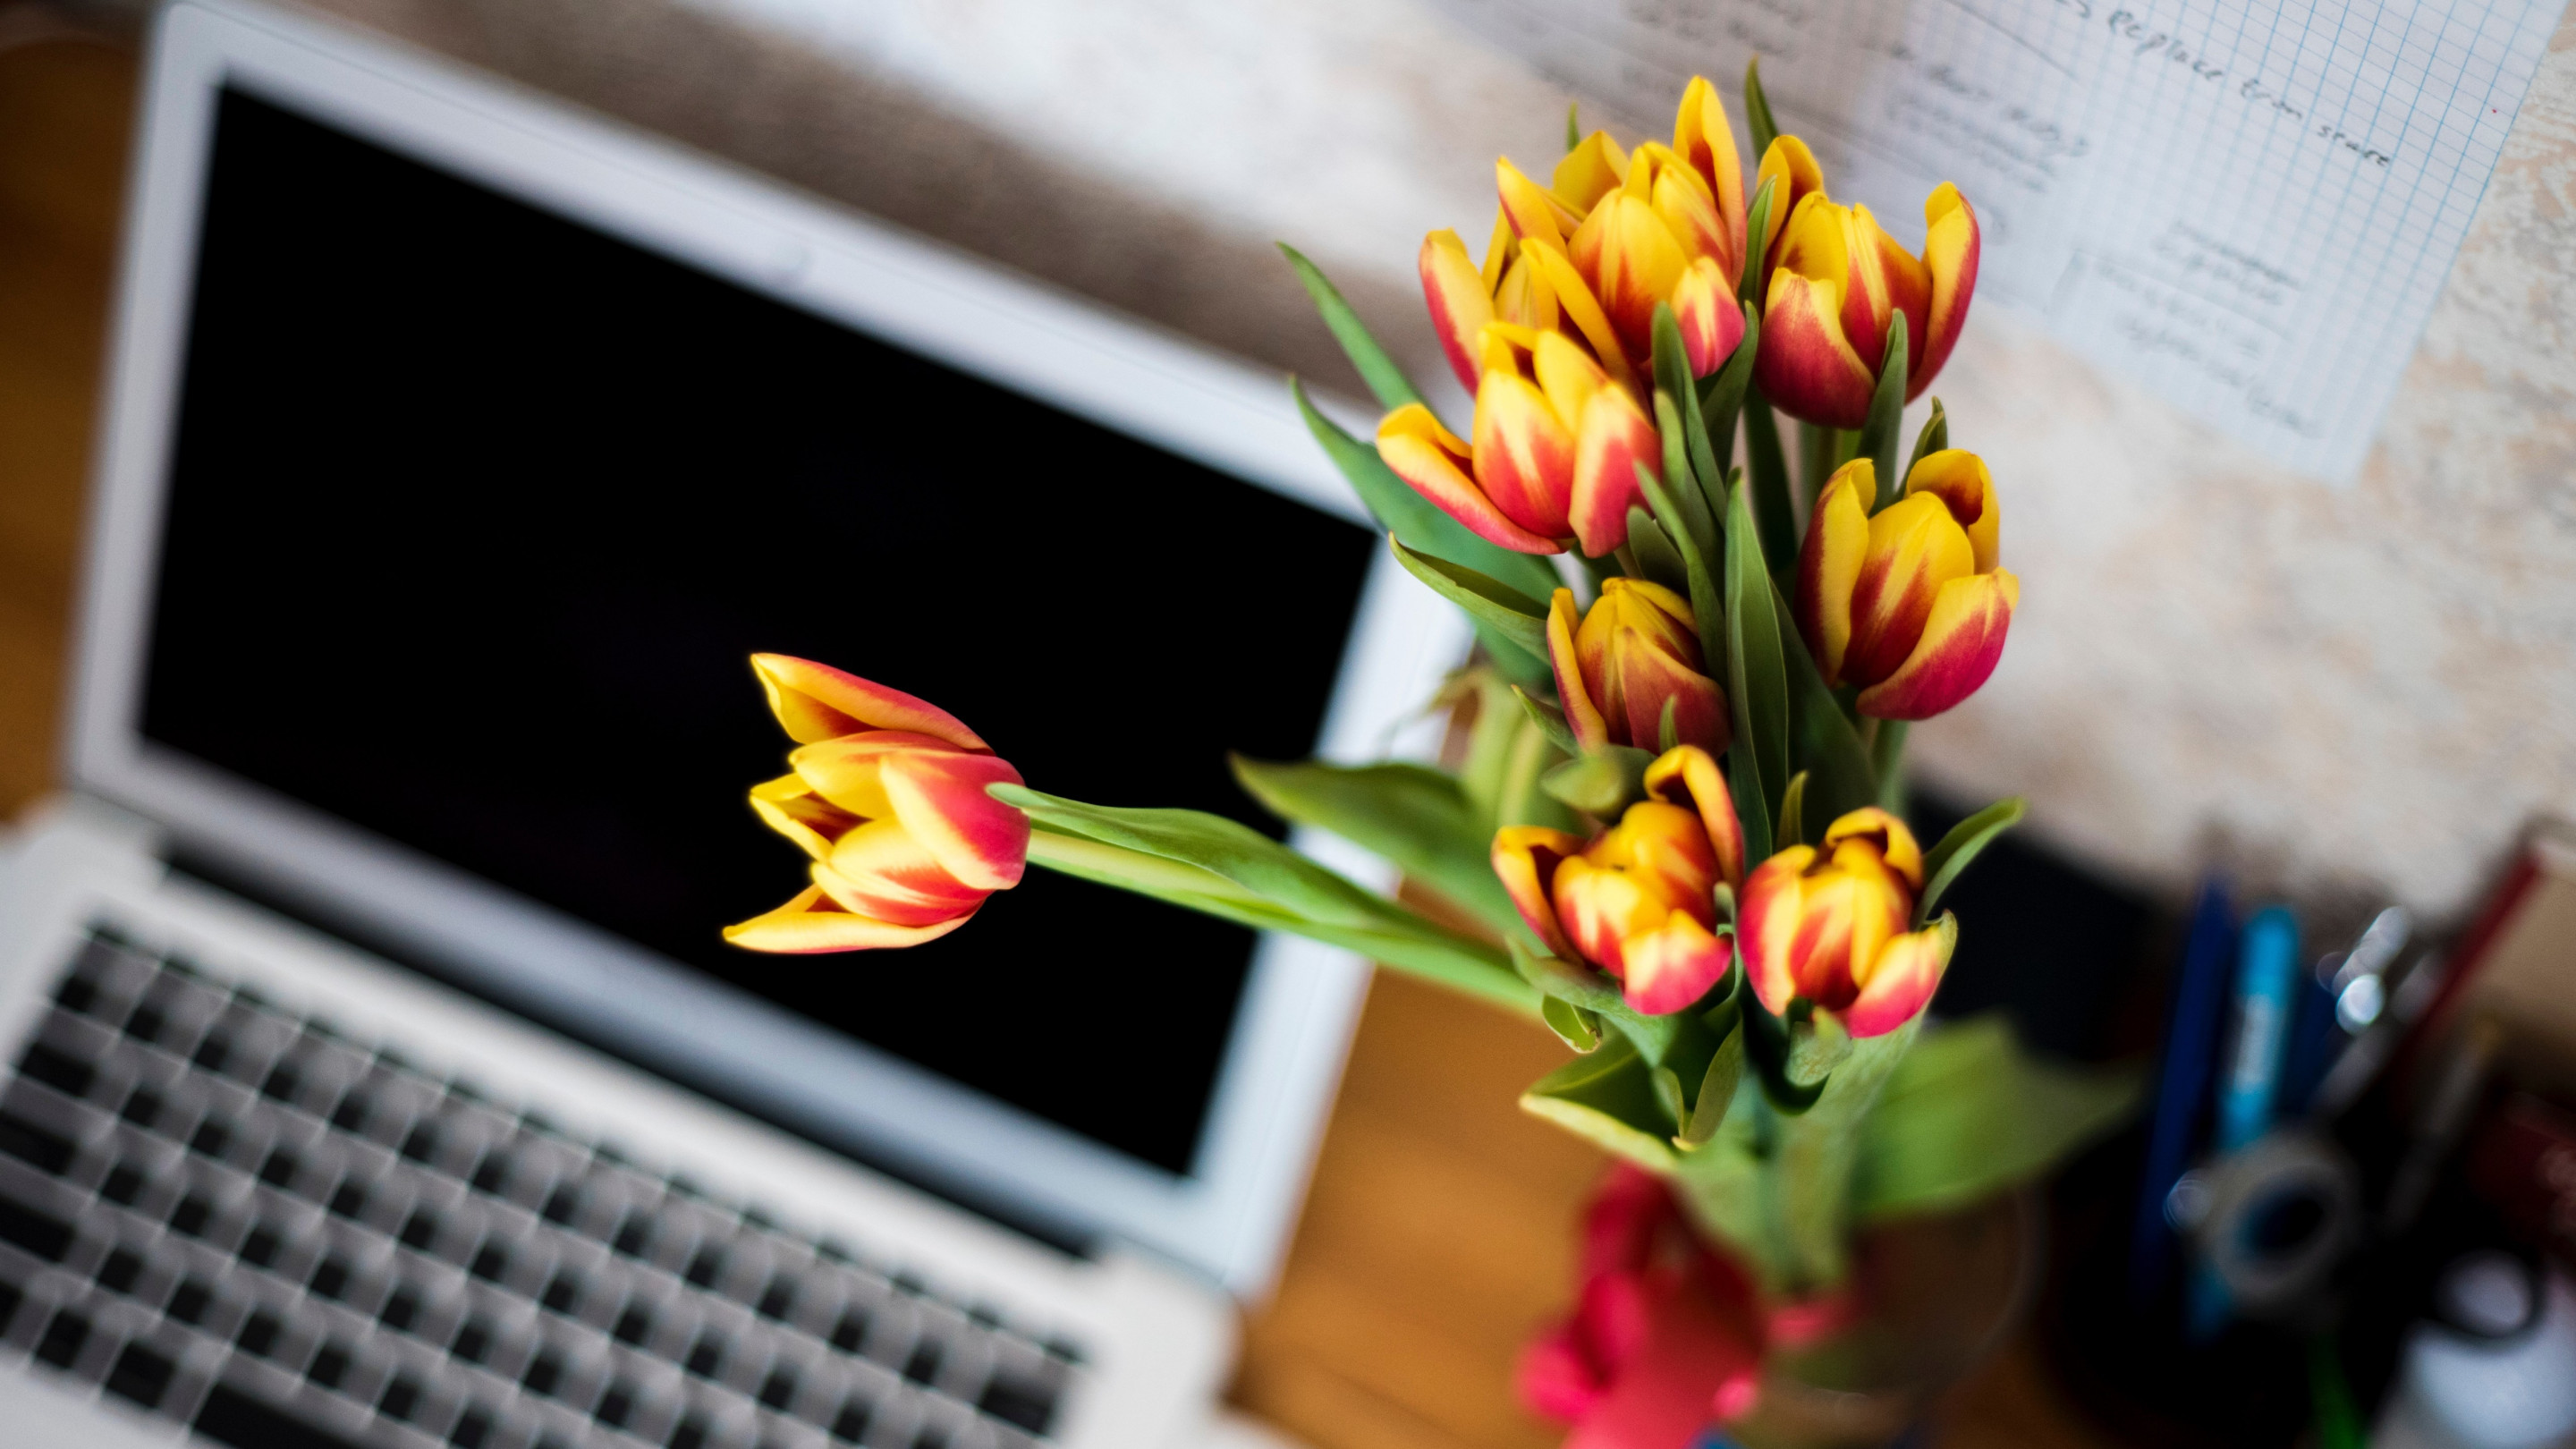 Laptop and tulips bouquet wallpaper 2880x1620